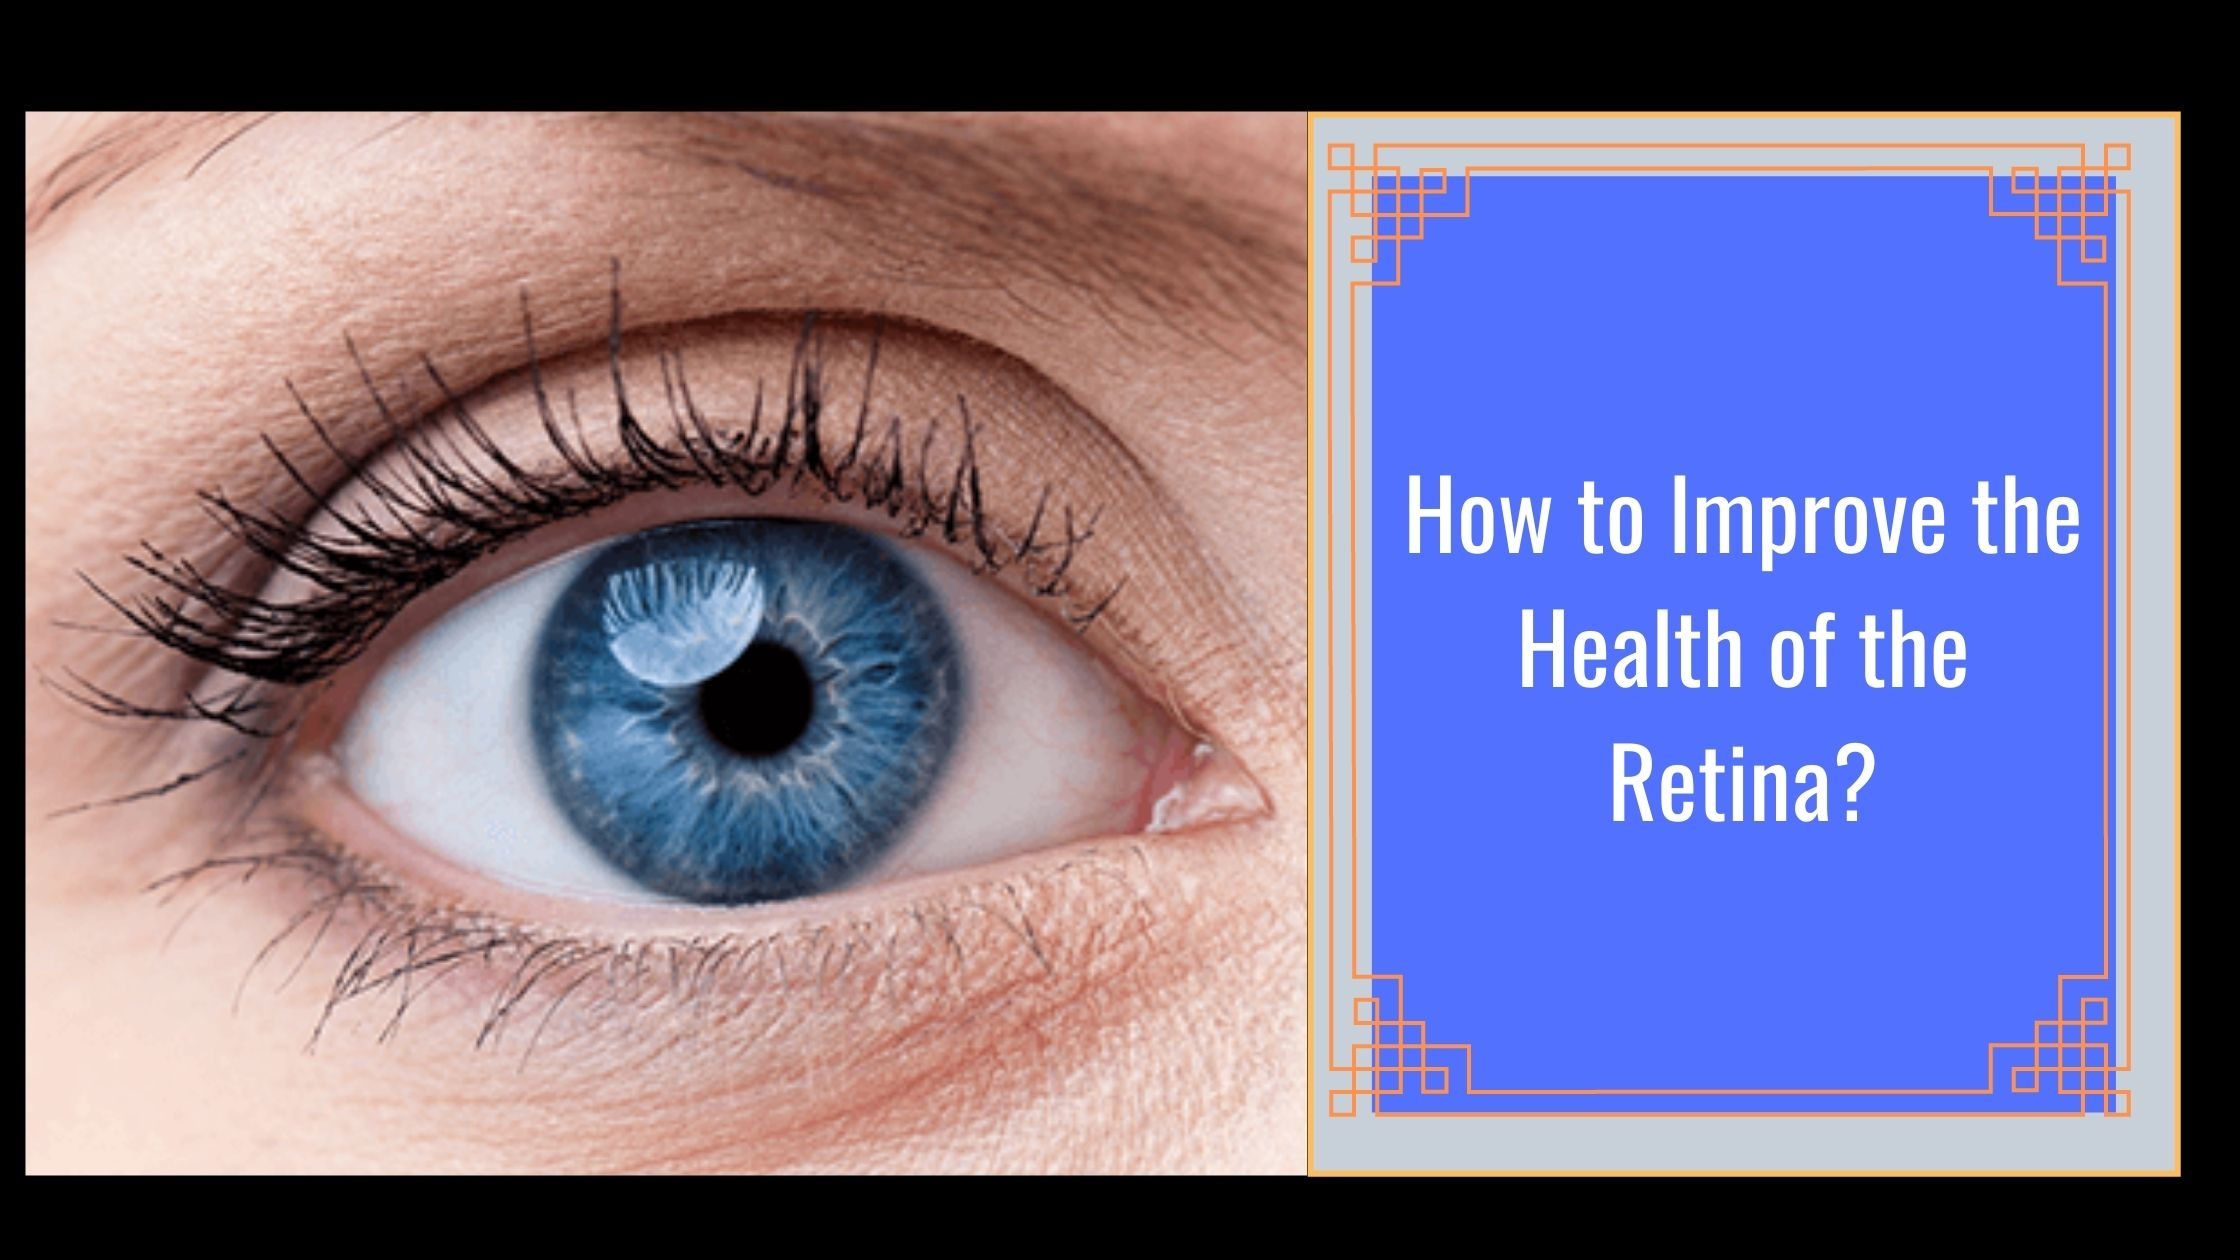 How to Improve the Health of the Retina?